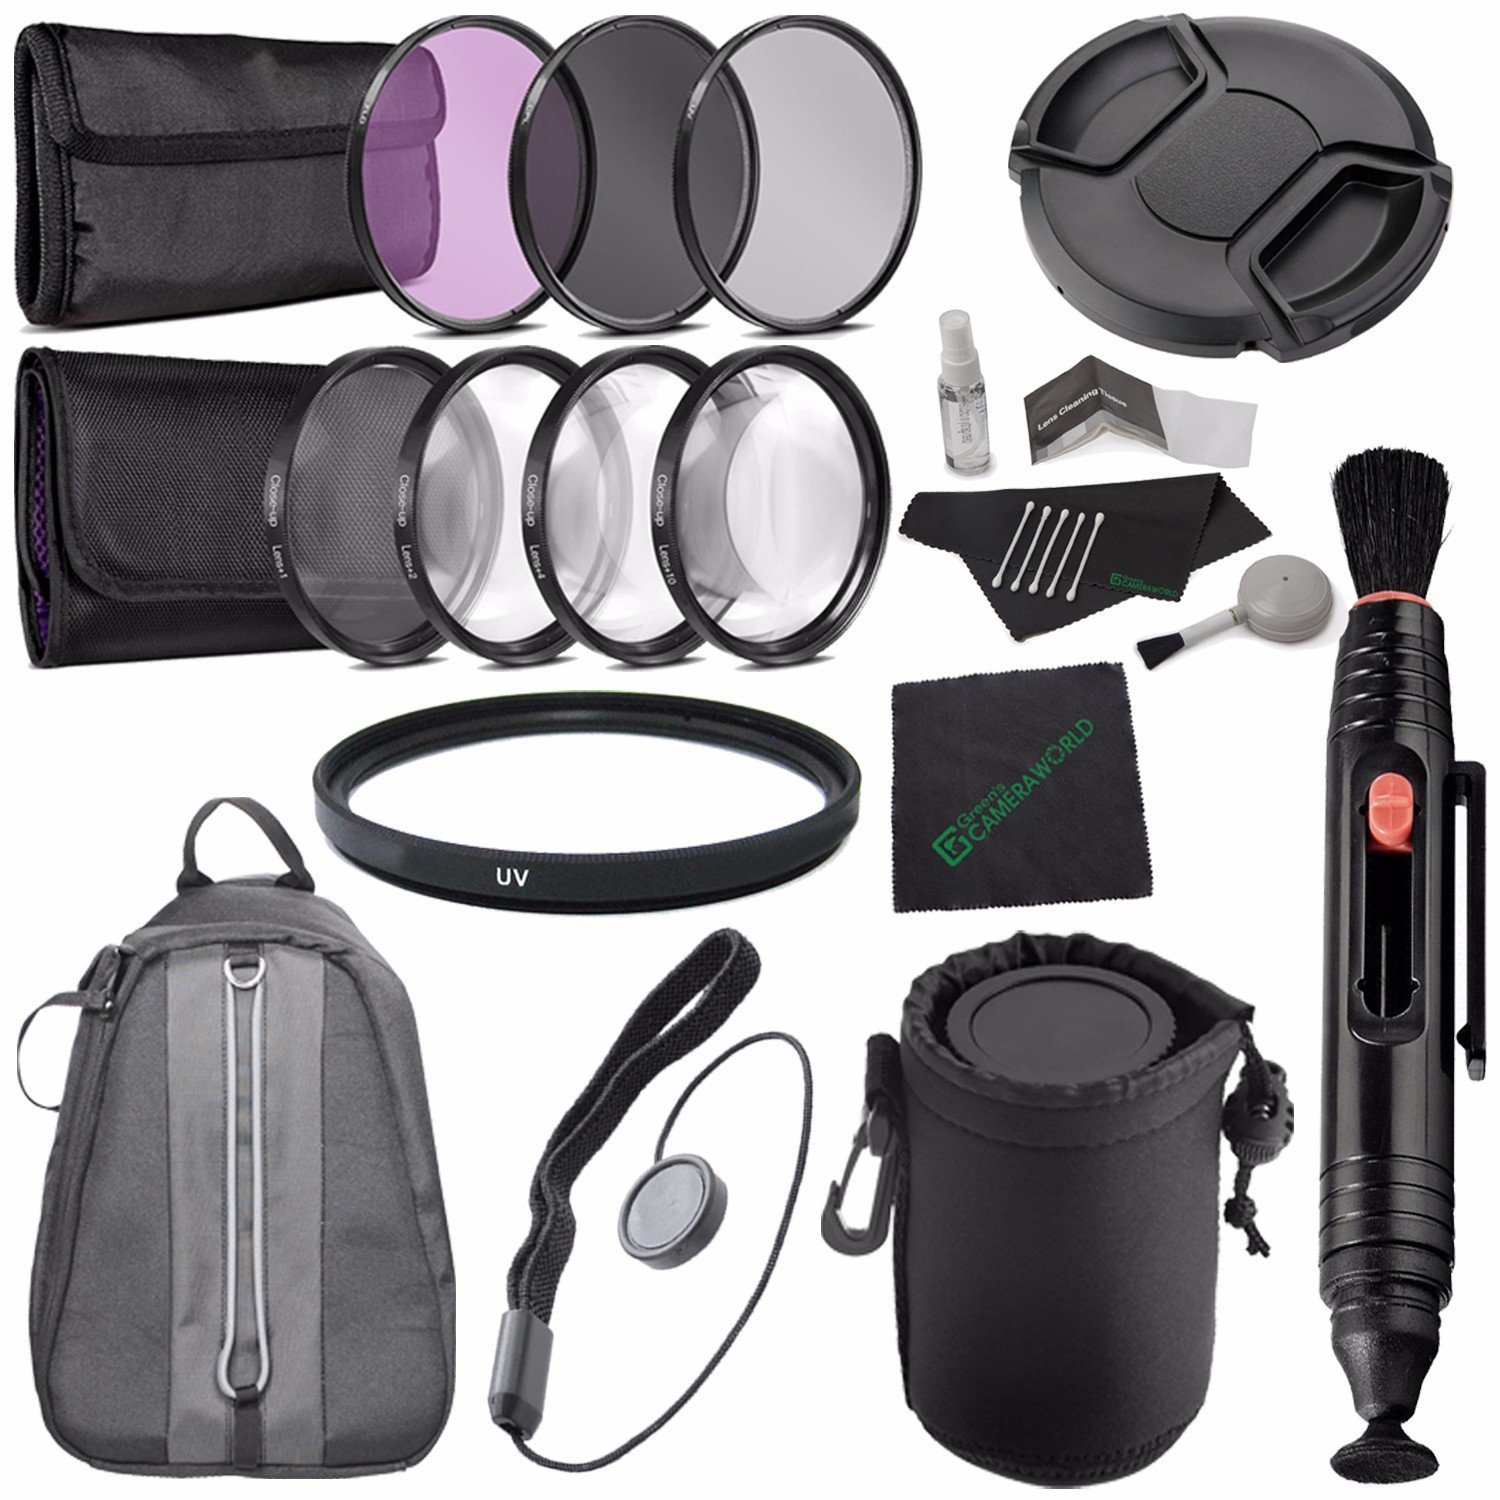 49mm 3 Piece Filter Set (UV, CPL, FL) + LENS CAP 49MM + 49mm +1 +2 +4 +10 Close-Up Macro Filter Set with Pouch + 49mm Multicoated UV Filter + Lens Pen Cleaner + Lens Cap Keeper + Cleaning Cloth Bundle